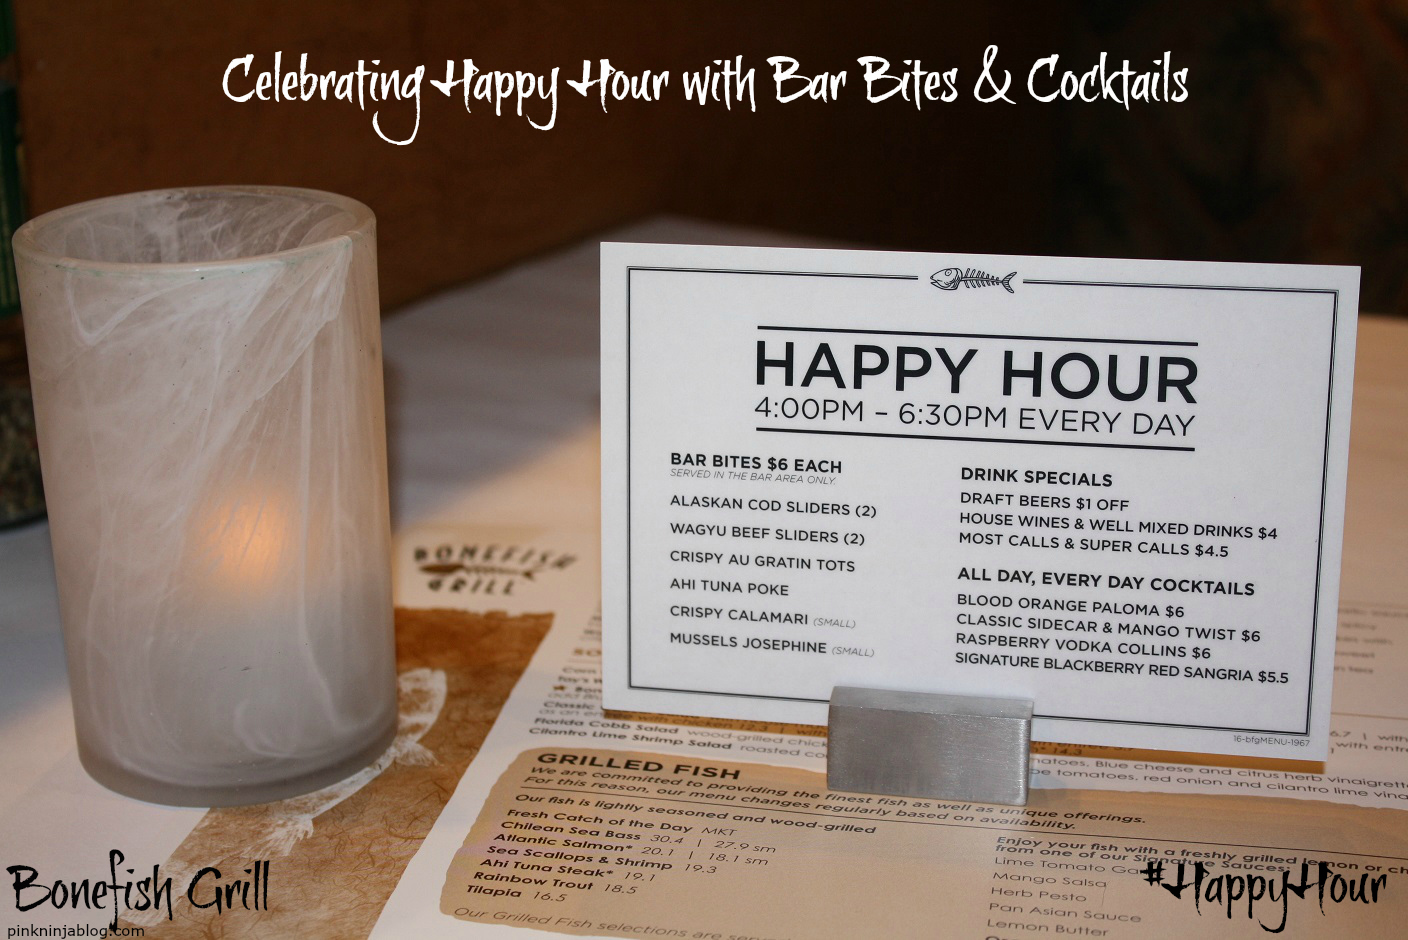 Bonefish Grill ~ Celebrating Happy Hour with Bar Bites & Cocktails